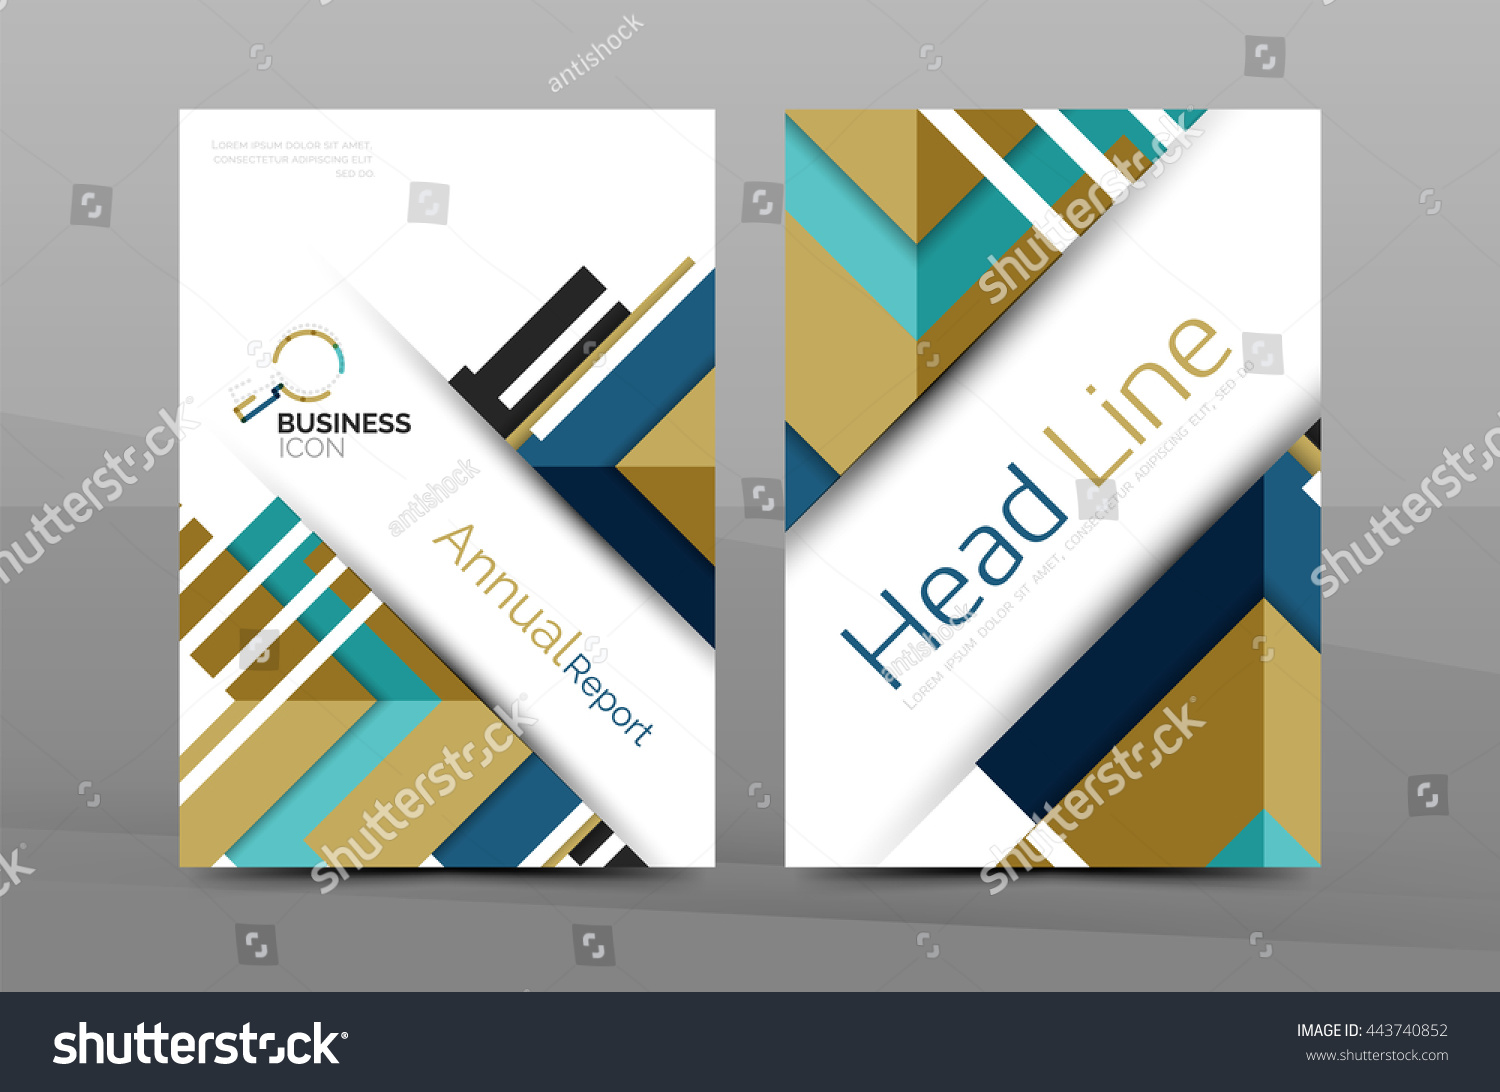 business cover page design brochure flyer stock illustration business cover page design brochure flyer layout abstract presentation background poster a4 size